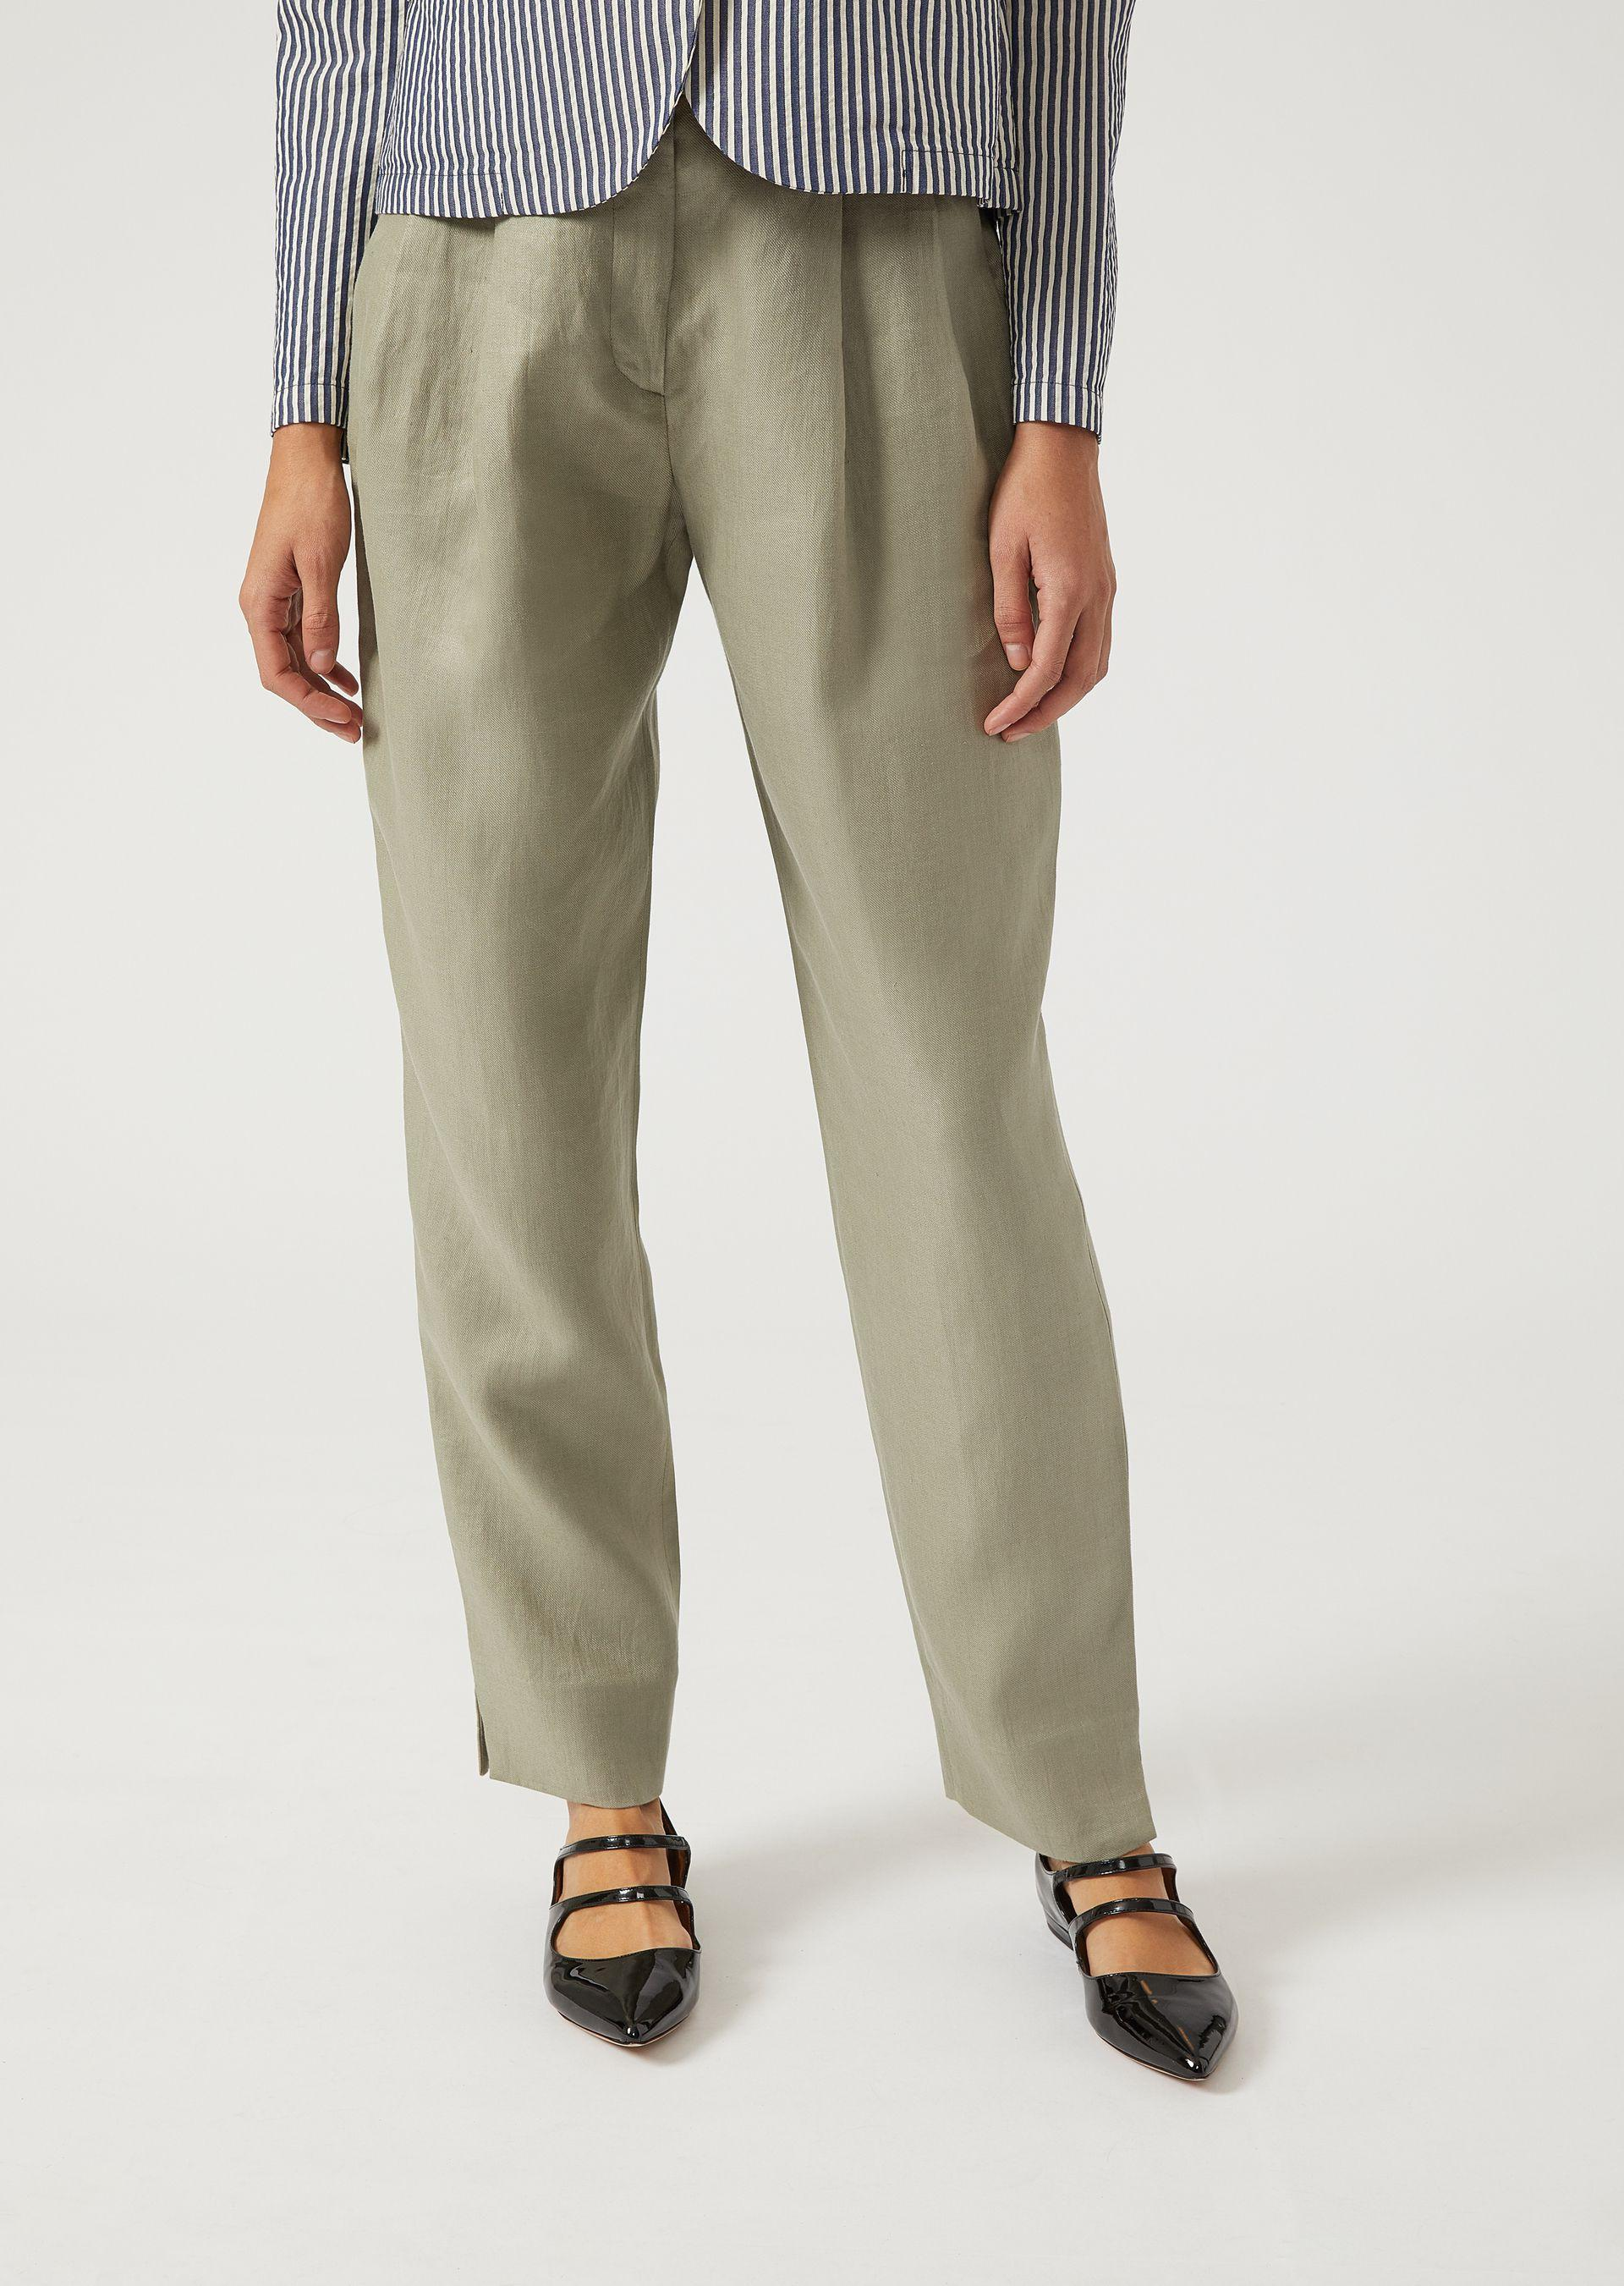 Emporio Armani Casual Pants - Item 13170233 In Beige ; Navy Blue